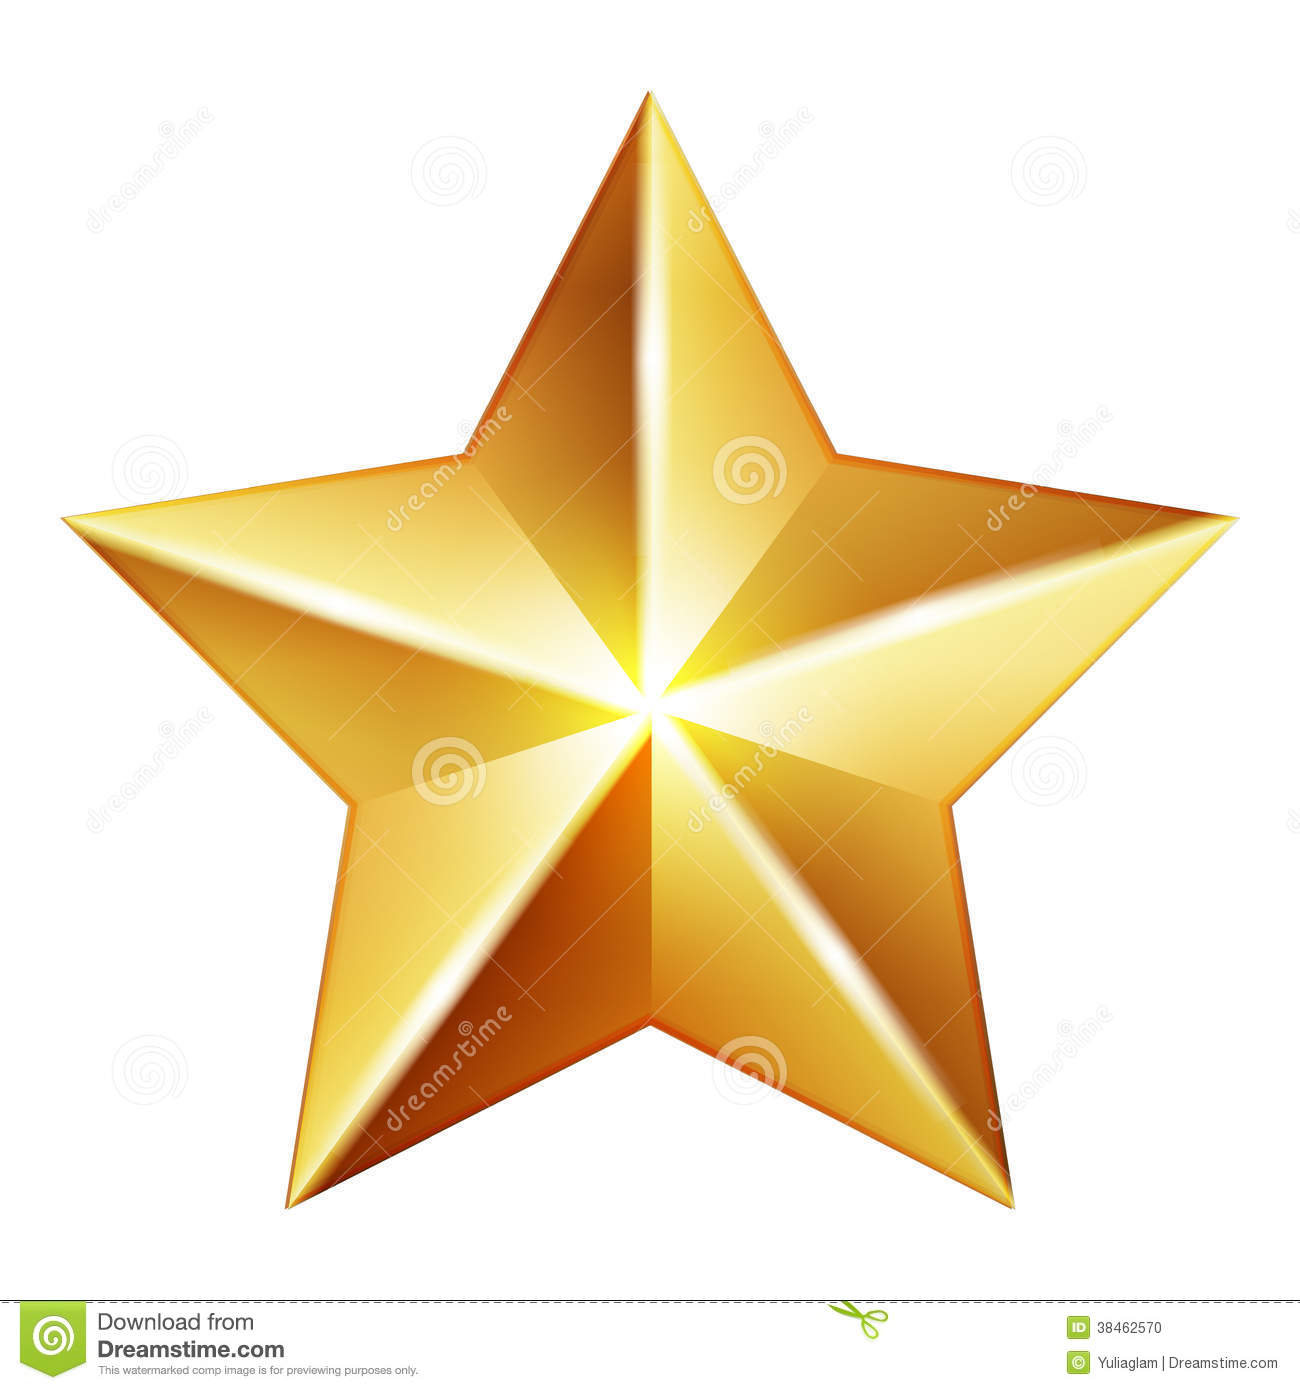 Gold Star Stock Photo - Image: 38462570